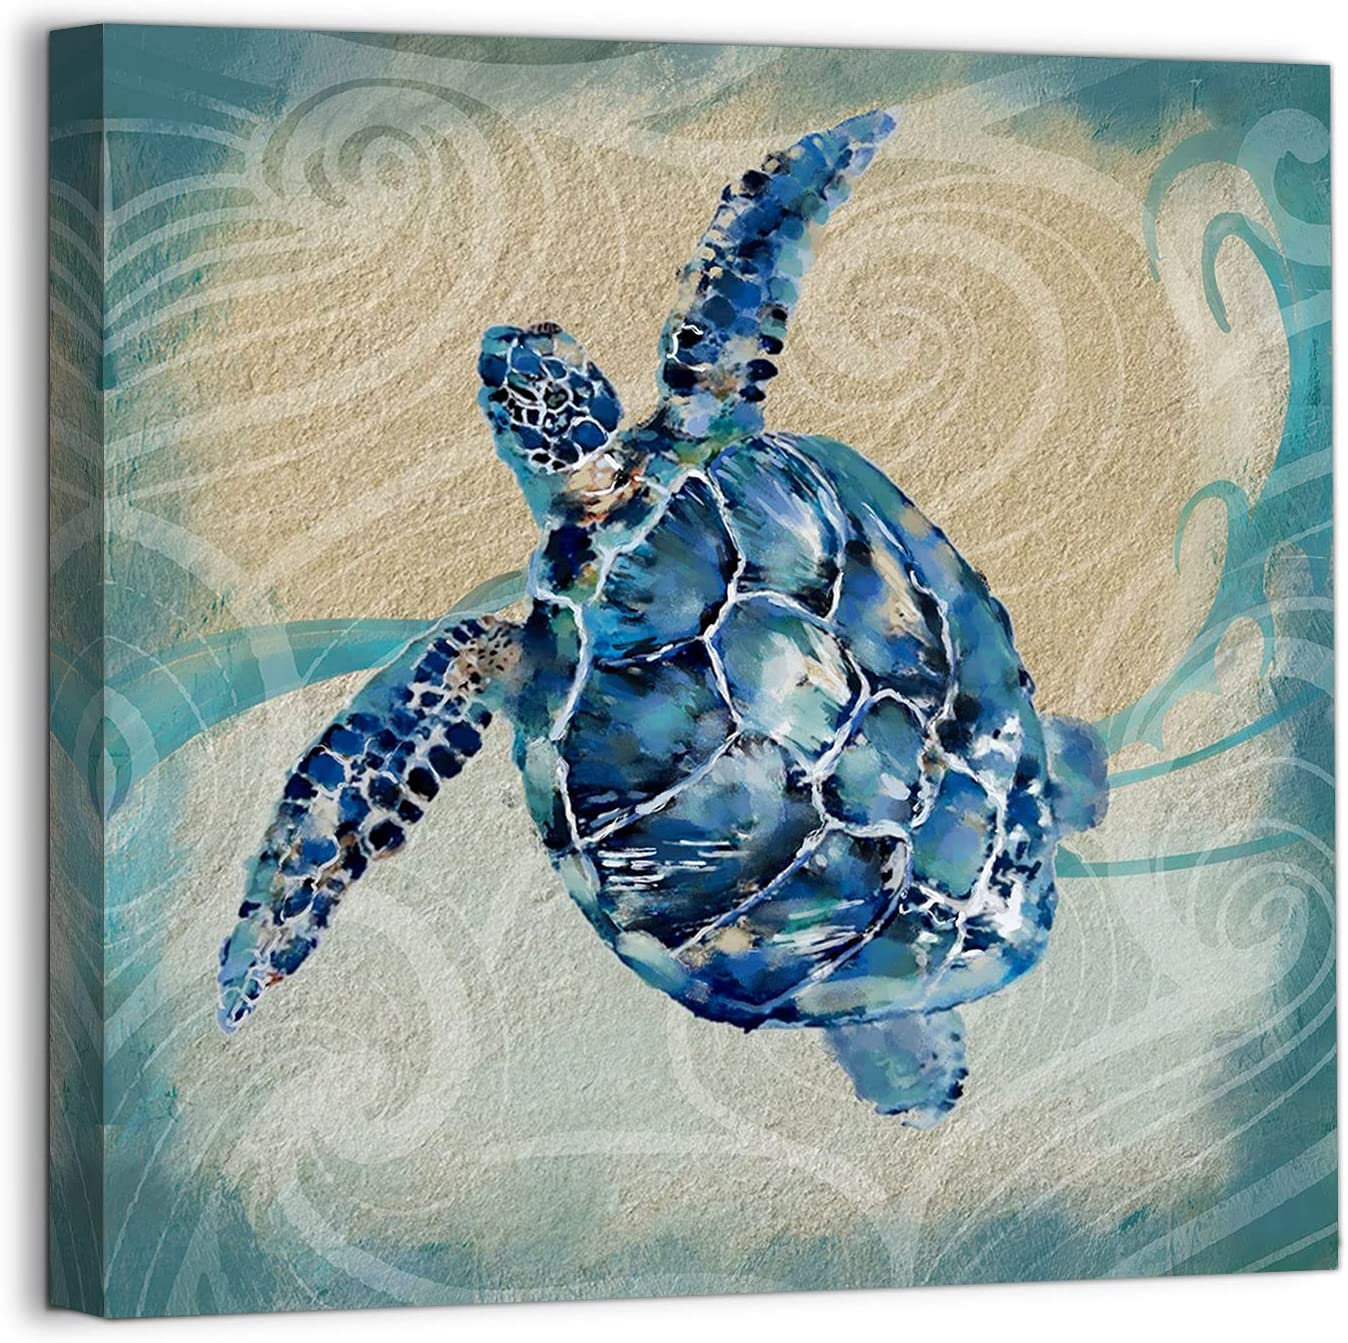 Bathroom Wall Art Canvas Navy Blue Sea Turtle Theme Wall Decor Ocean Painting Pictures for Kids Room Decor Modern Framed Artwork for Bedroom Office Kitchen Wall Decor Home Wall Decoration Size 14x14